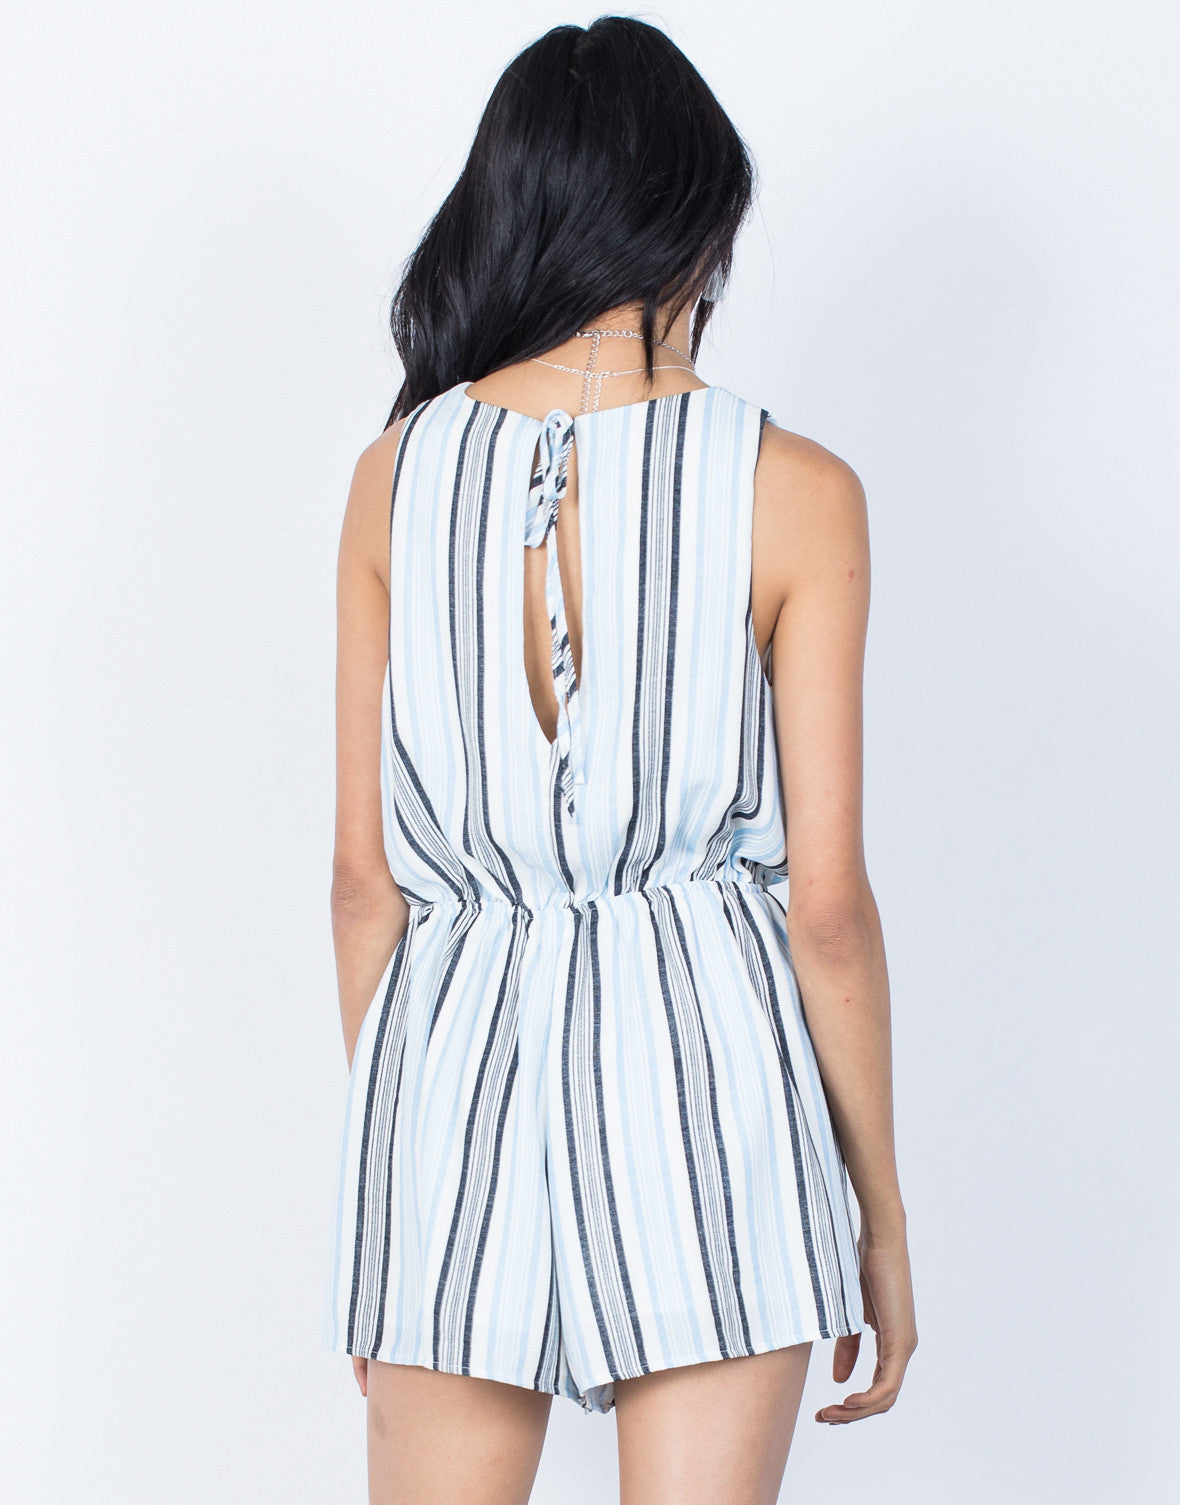 Light Blue Ocean Breeze Romper - Back View